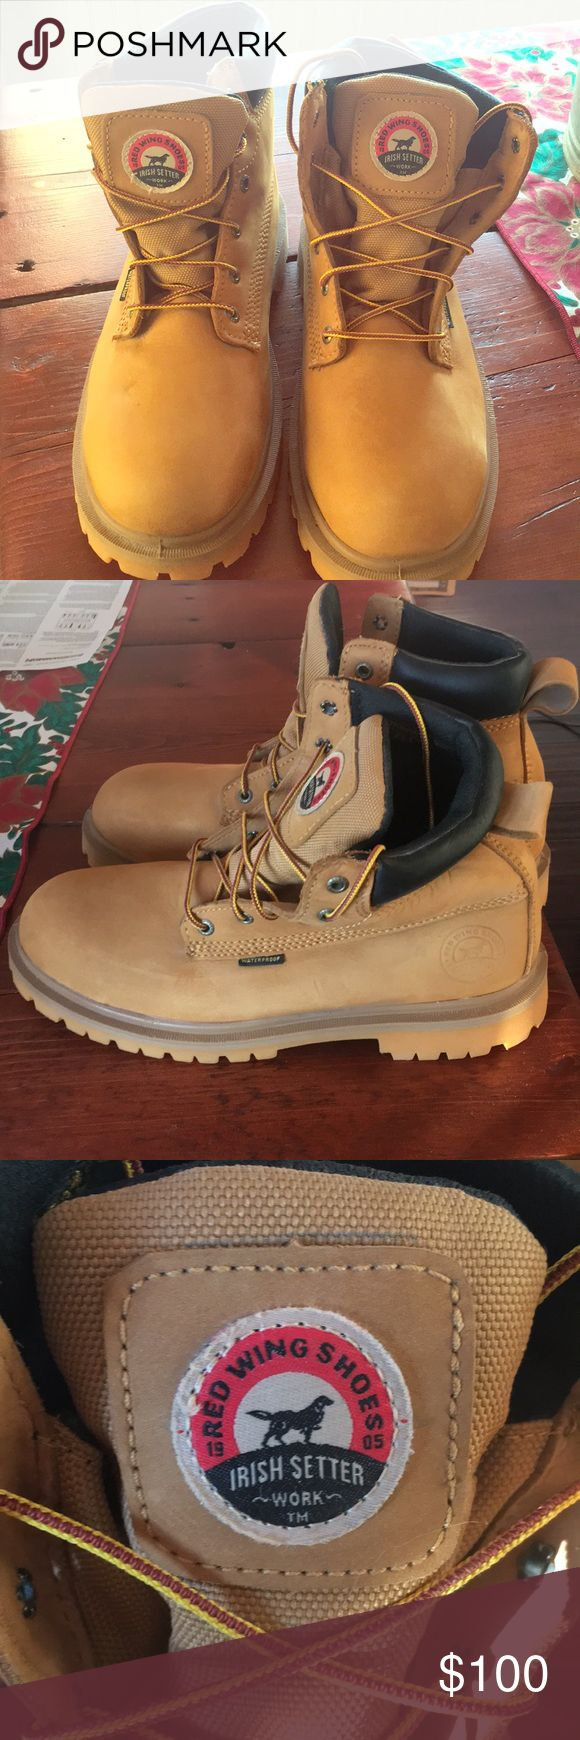 Red Wing Irish Setter Work boots sz 9.5 Men's Never worn. NWOT Red Wing Men 9.5 Water proof and 400 gram insulation. Red Wing Shoes Shoes Boots